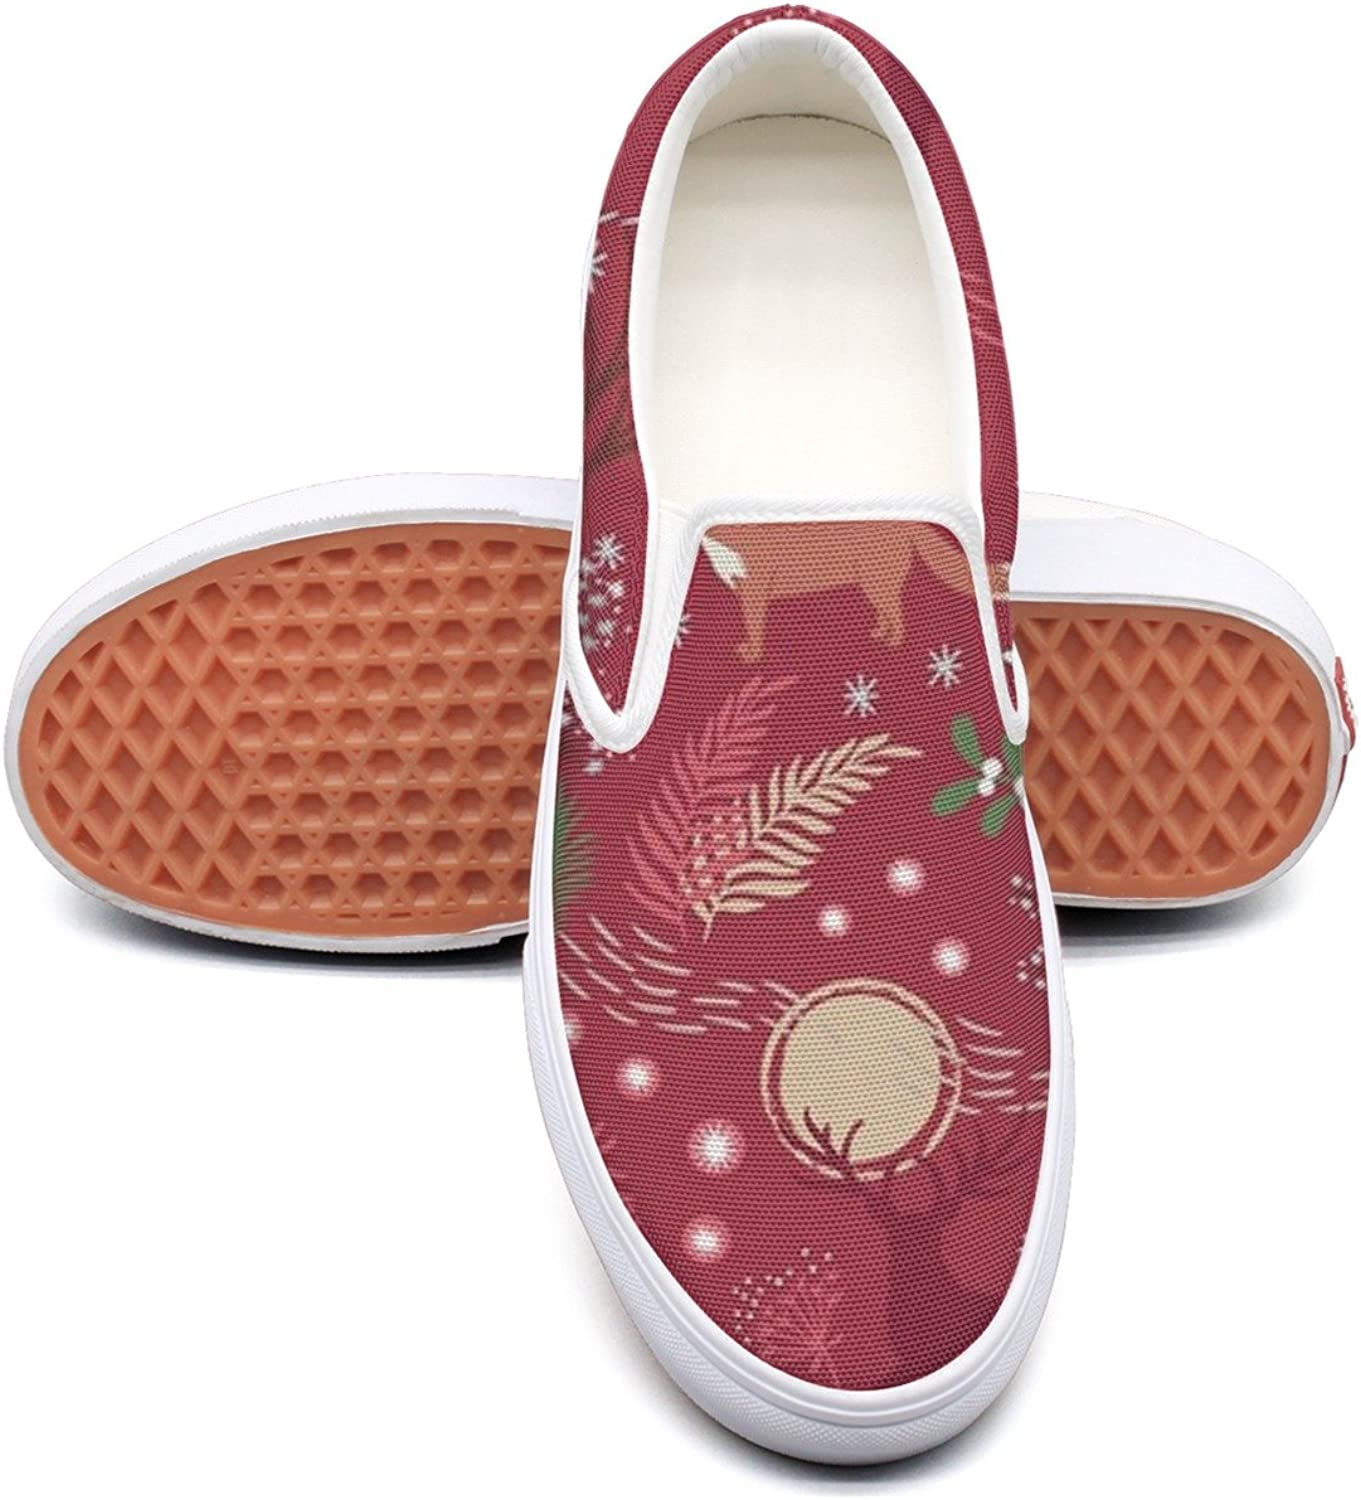 Woodland Creatures Deer Womens Plain Canvas Lace Up Dhoes Low Top Cool Basketball shoes For Women's